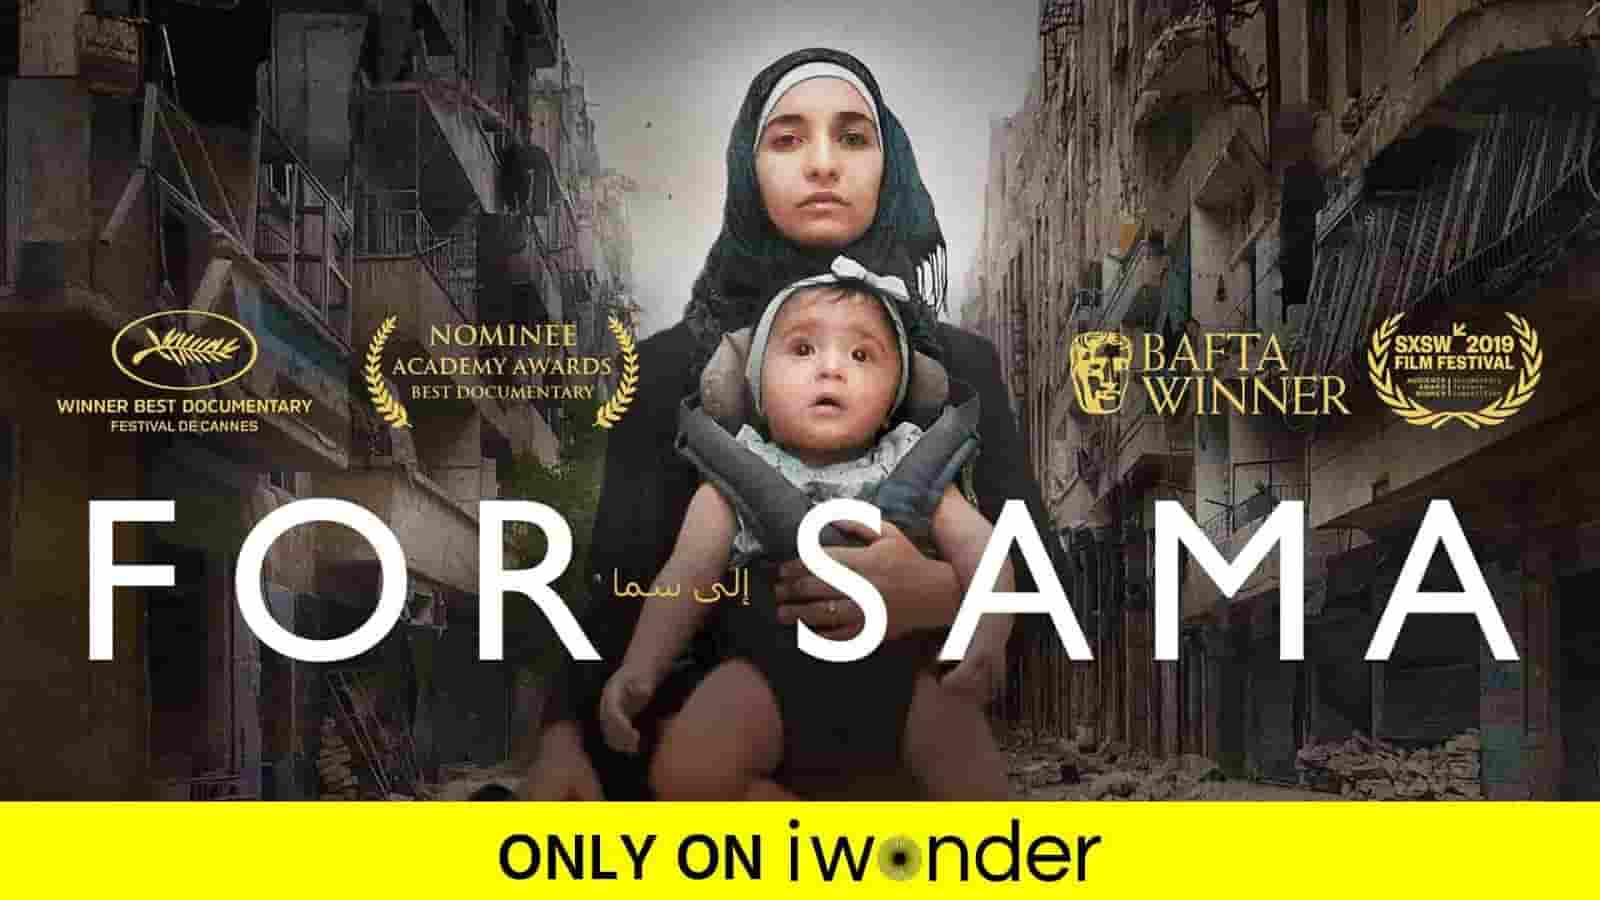 2020 Academy Award nominee 'For Sama' documentary now streaming only on iwonder